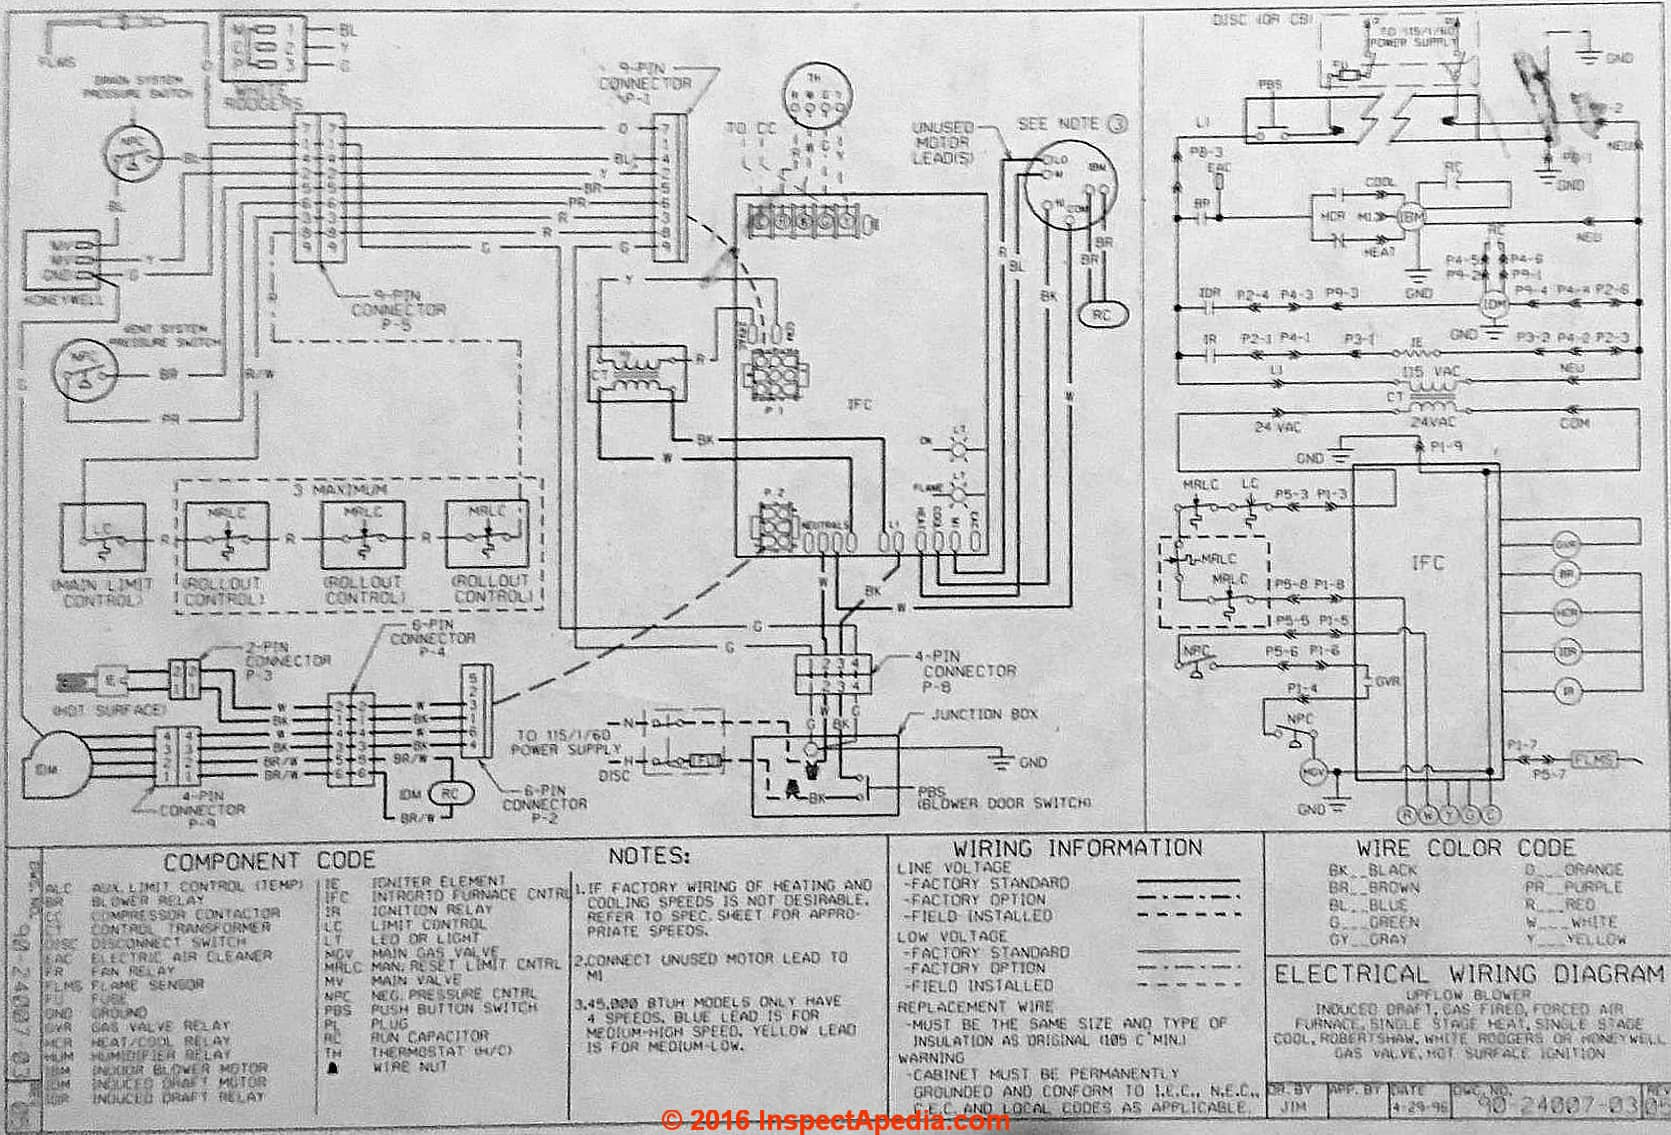 Rheem_AHU_Wiring_Diagram_IAP air conditioner heat pump faqs wiring diagram package unit at edmiracle.co